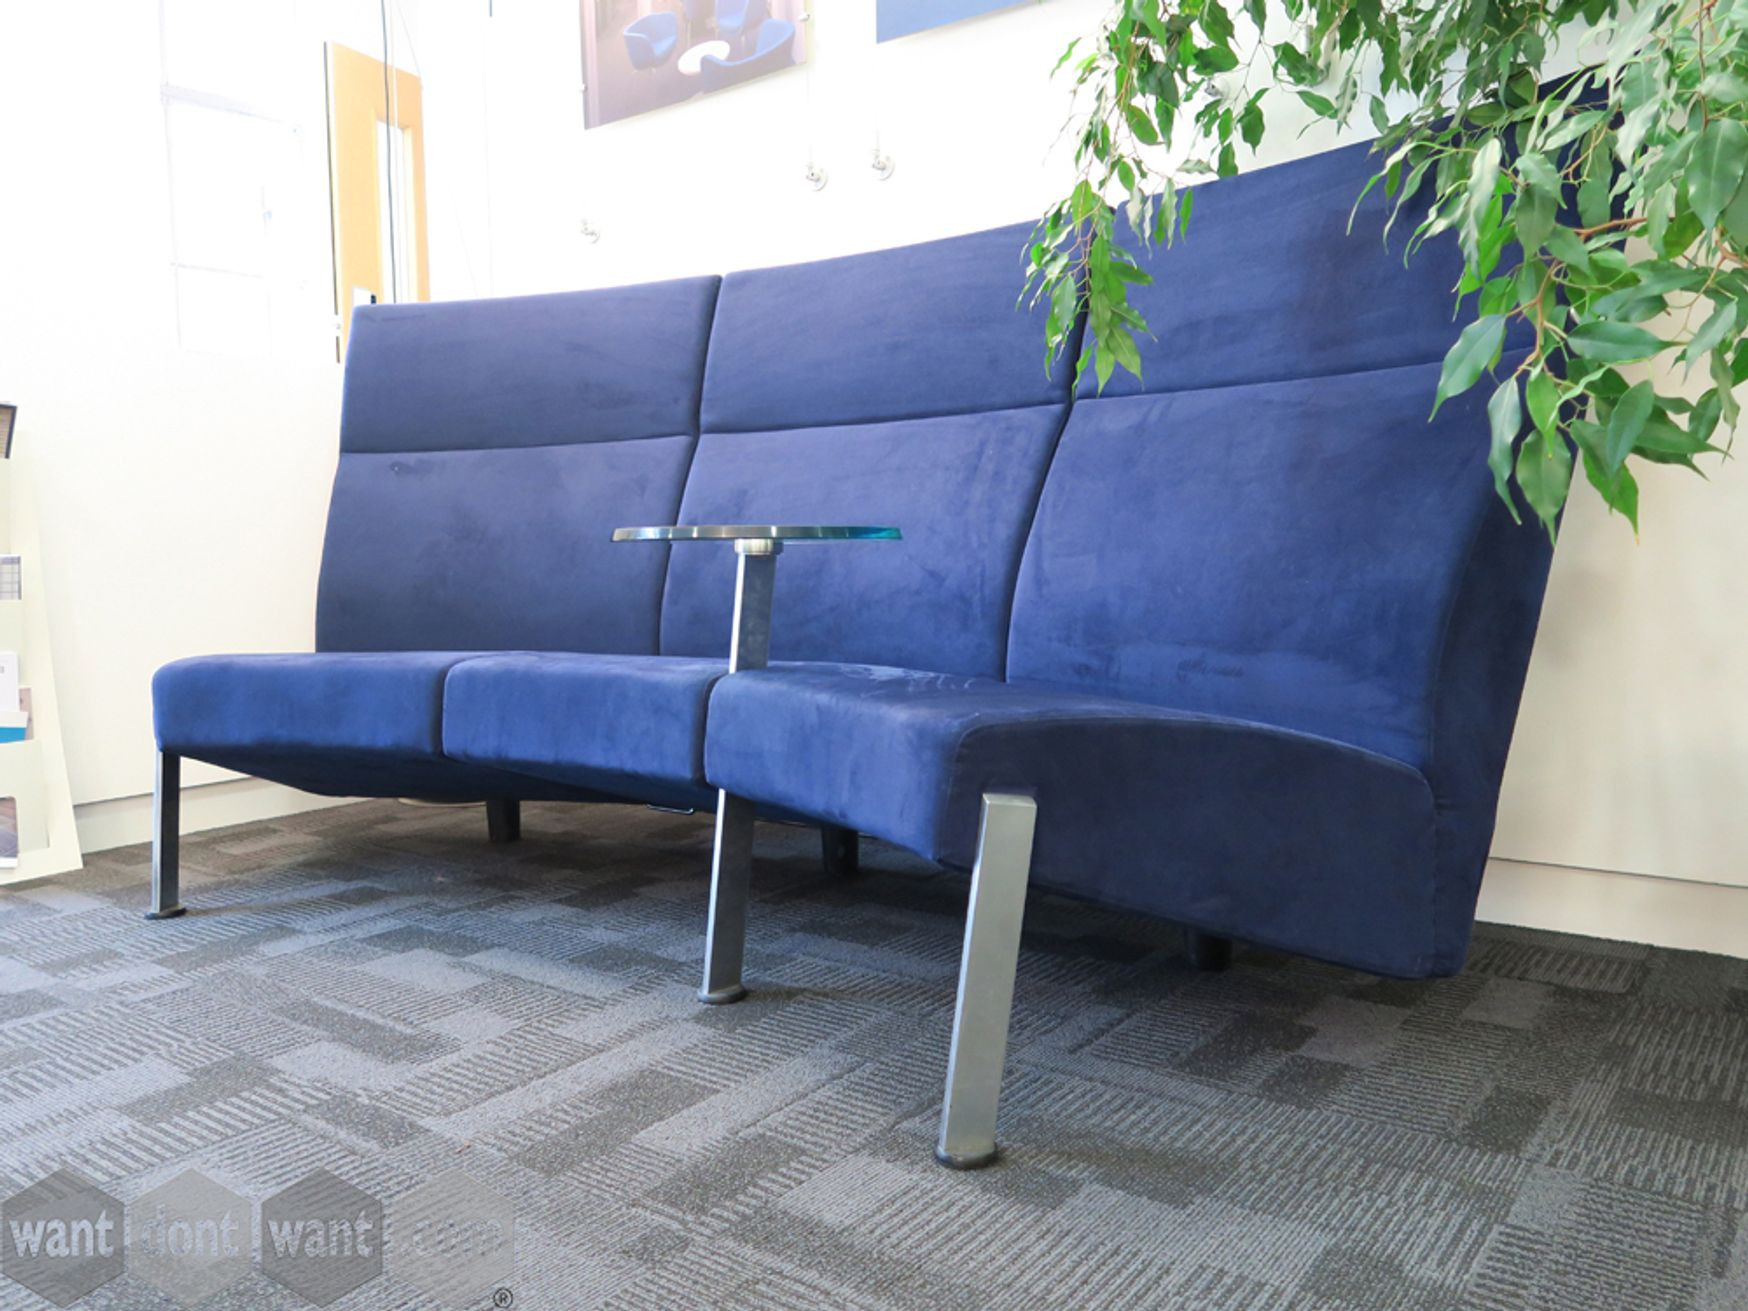 Used Fritz Hansen Curved High Back Sofa with Glass Table